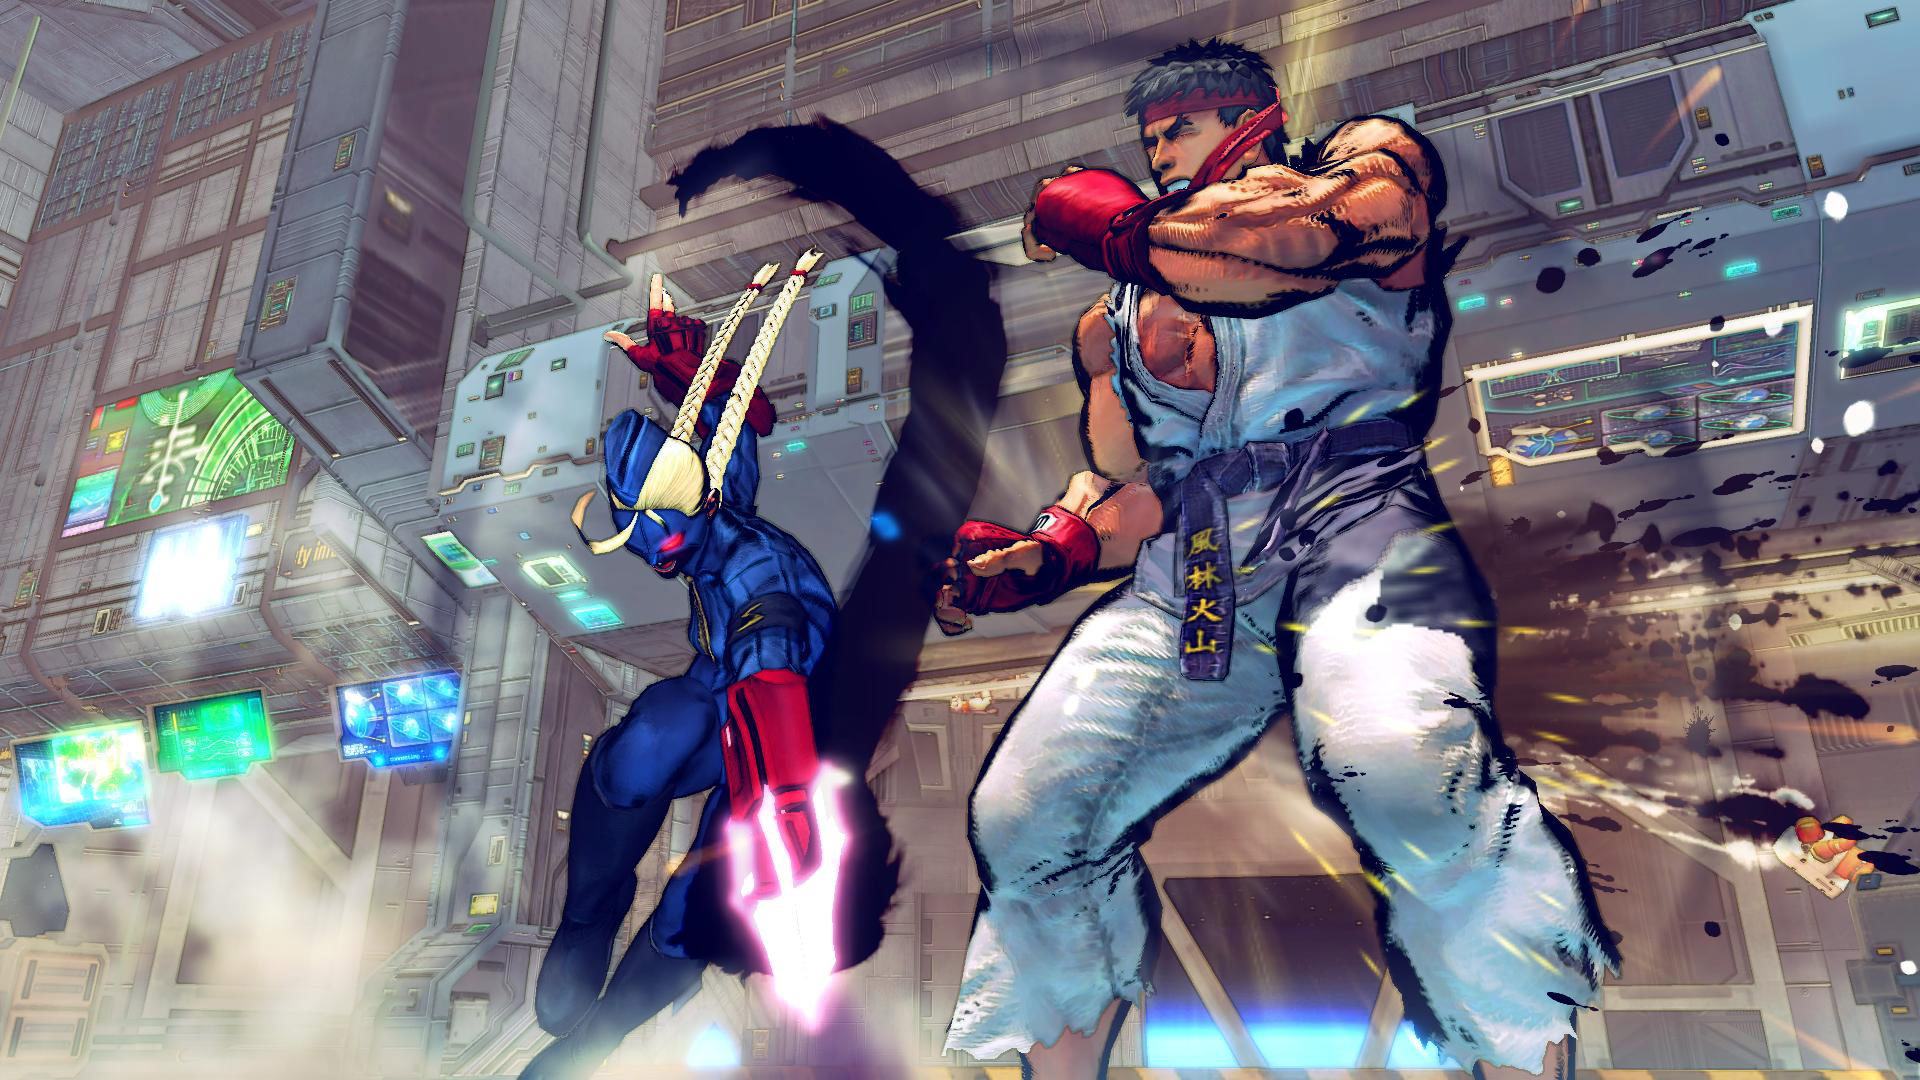 Decapre artwork and screen shots for Ultra Street Fighter 4 image #8